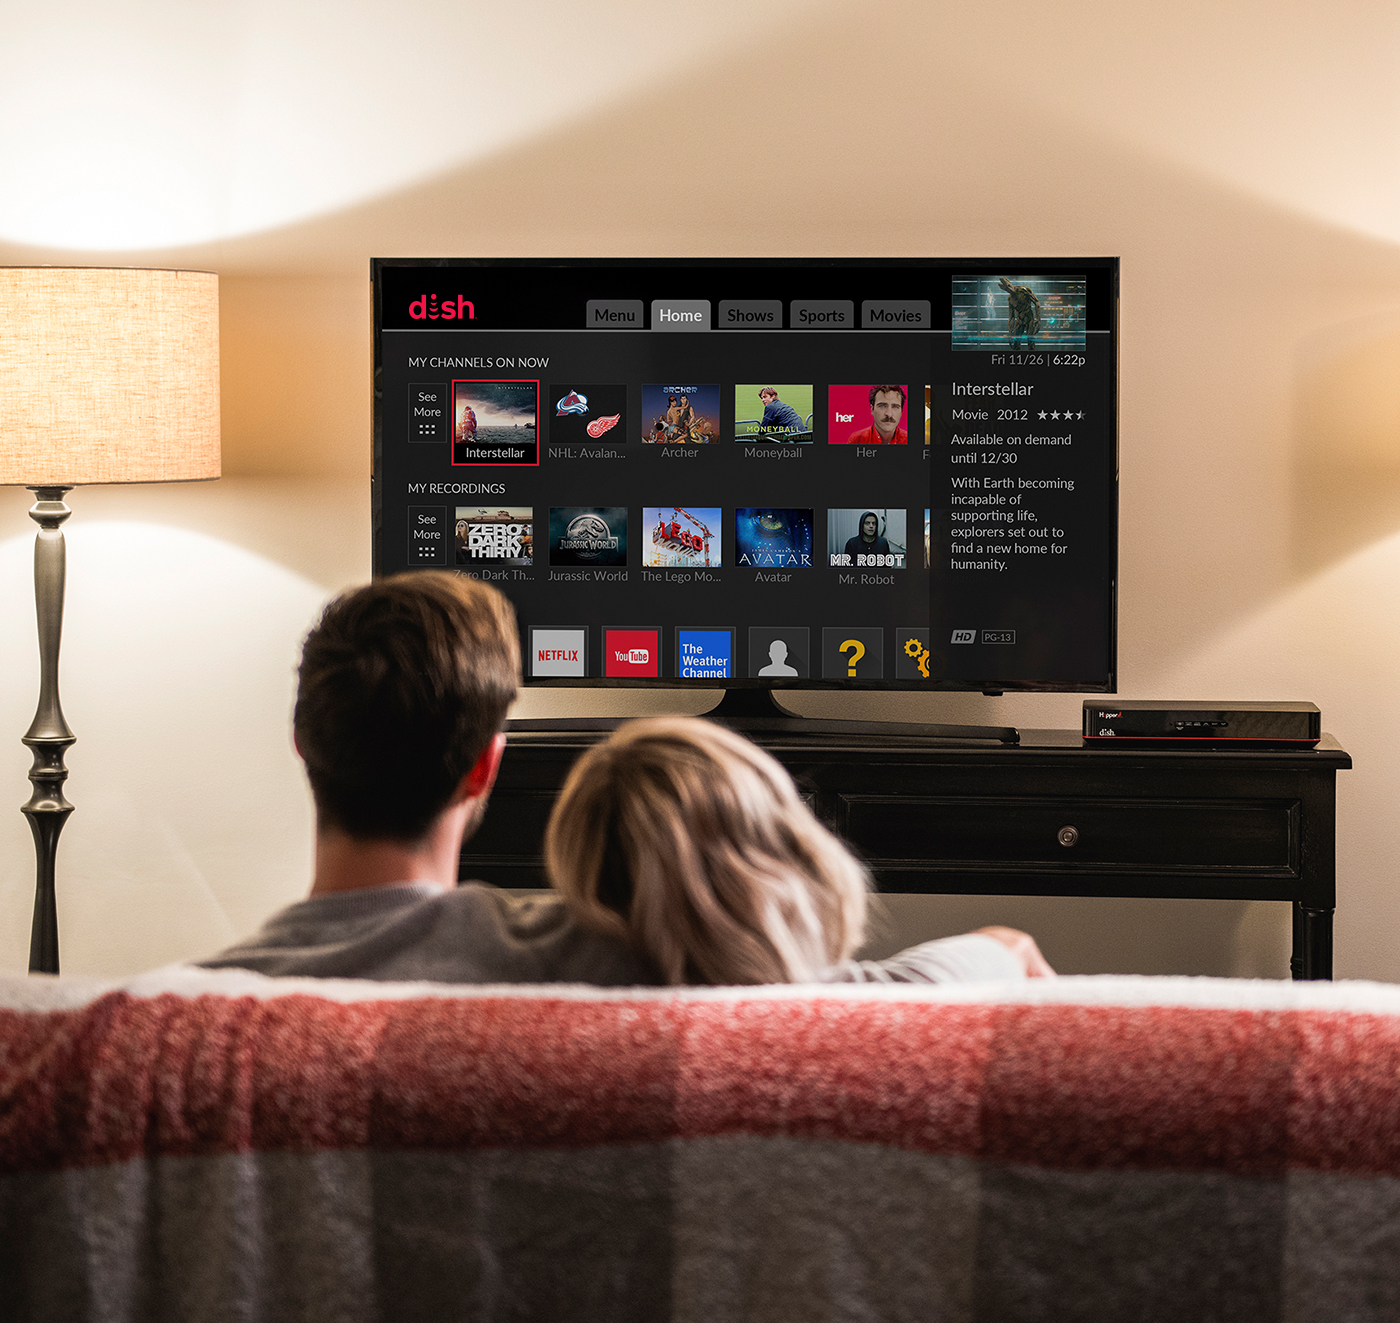 couple snuggled on couch watching media from DISH hopper dvr